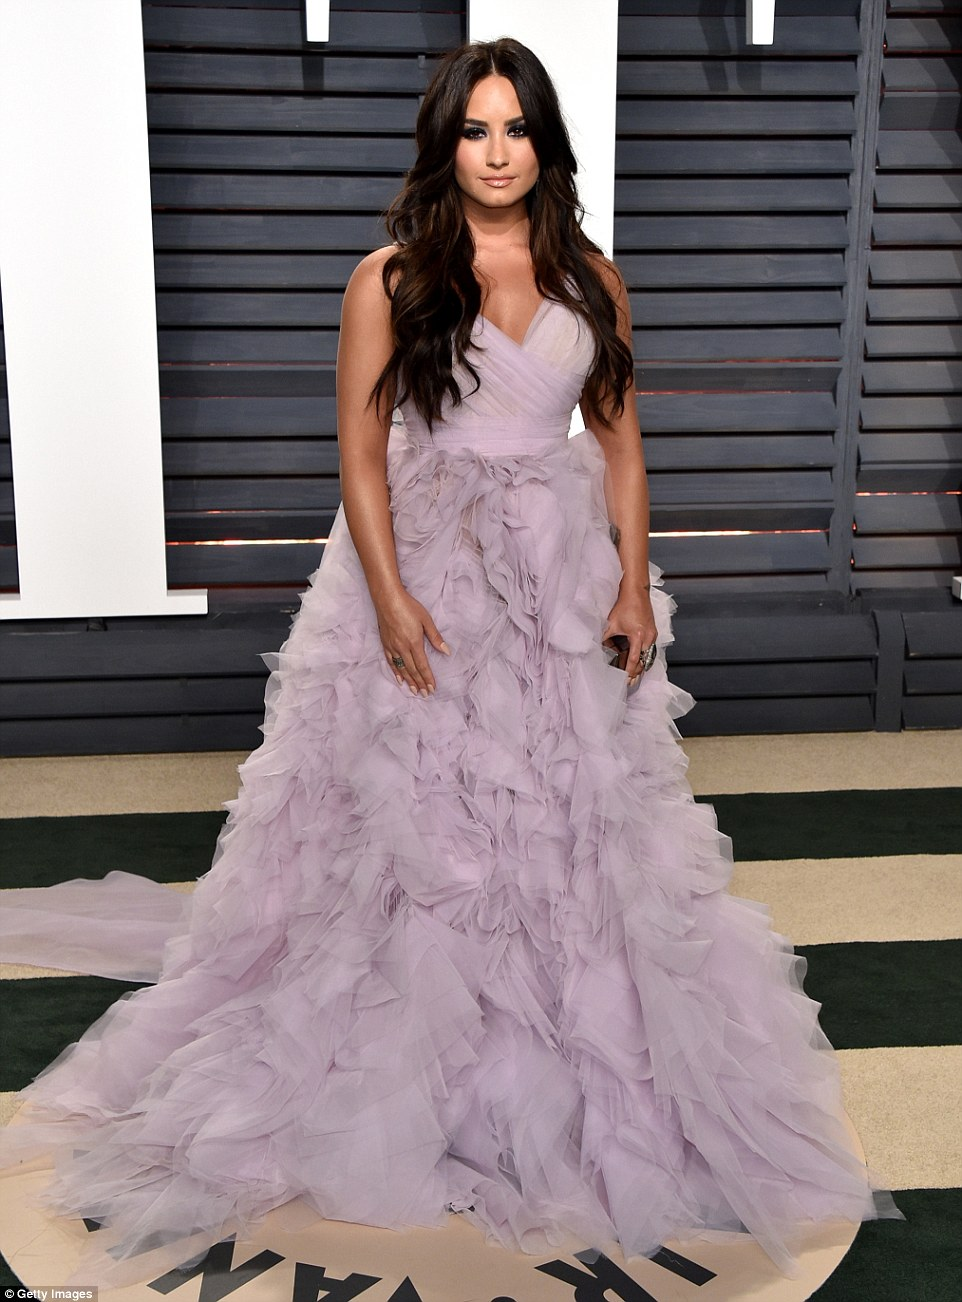 3DBCFB7300000578-0-Layers_of_lavender_Demi_Lovato_24_went_with_an_over_the_top_gown-a-18_1488181785458